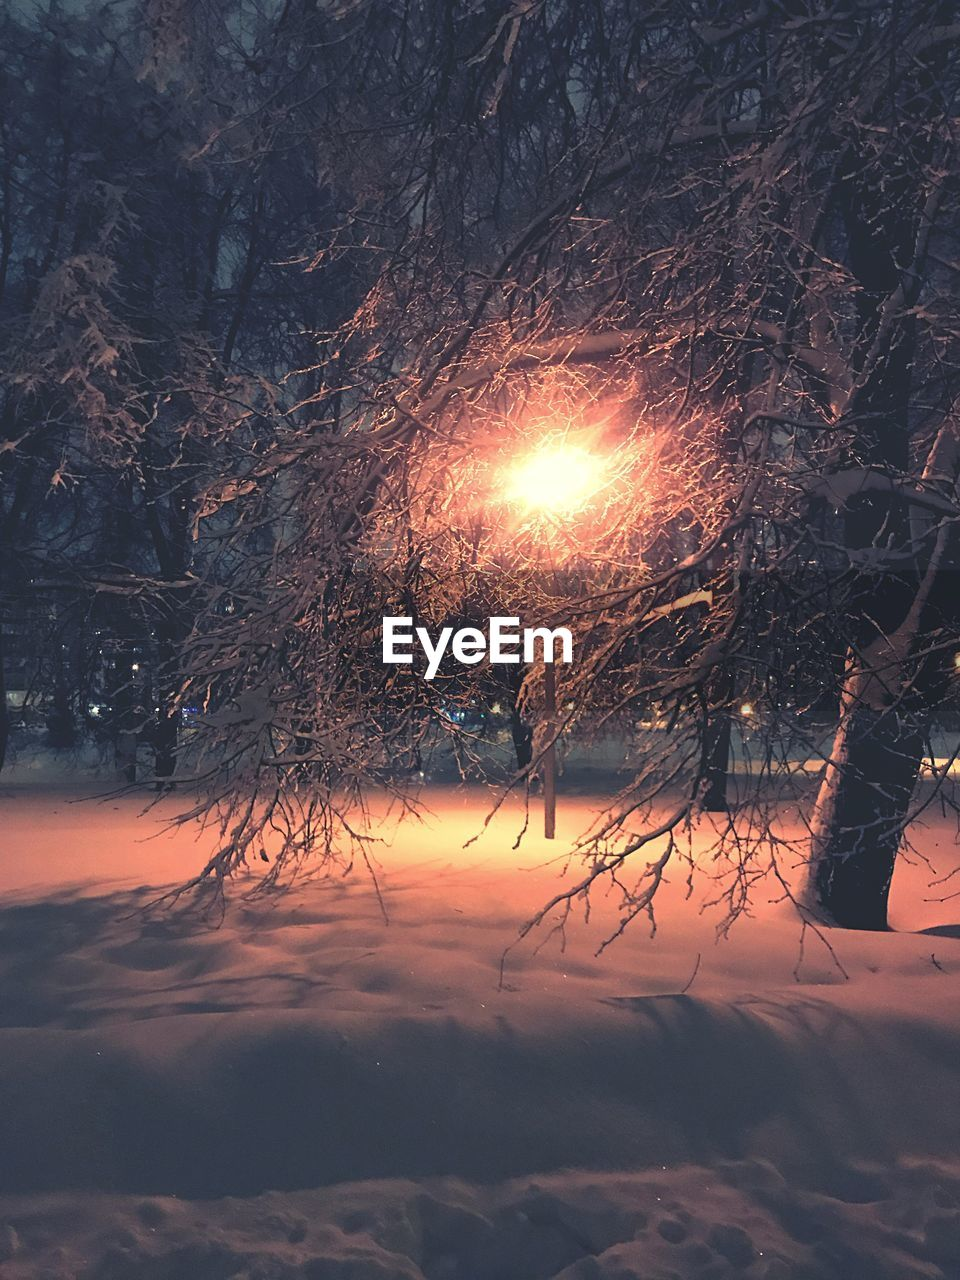 winter, cold temperature, snow, nature, cold, tranquility, frozen, sun, ice, beauty in nature, weather, outdoors, no people, tranquil scene, tree, sunset, bare tree, scenics, landscape, branch, sky